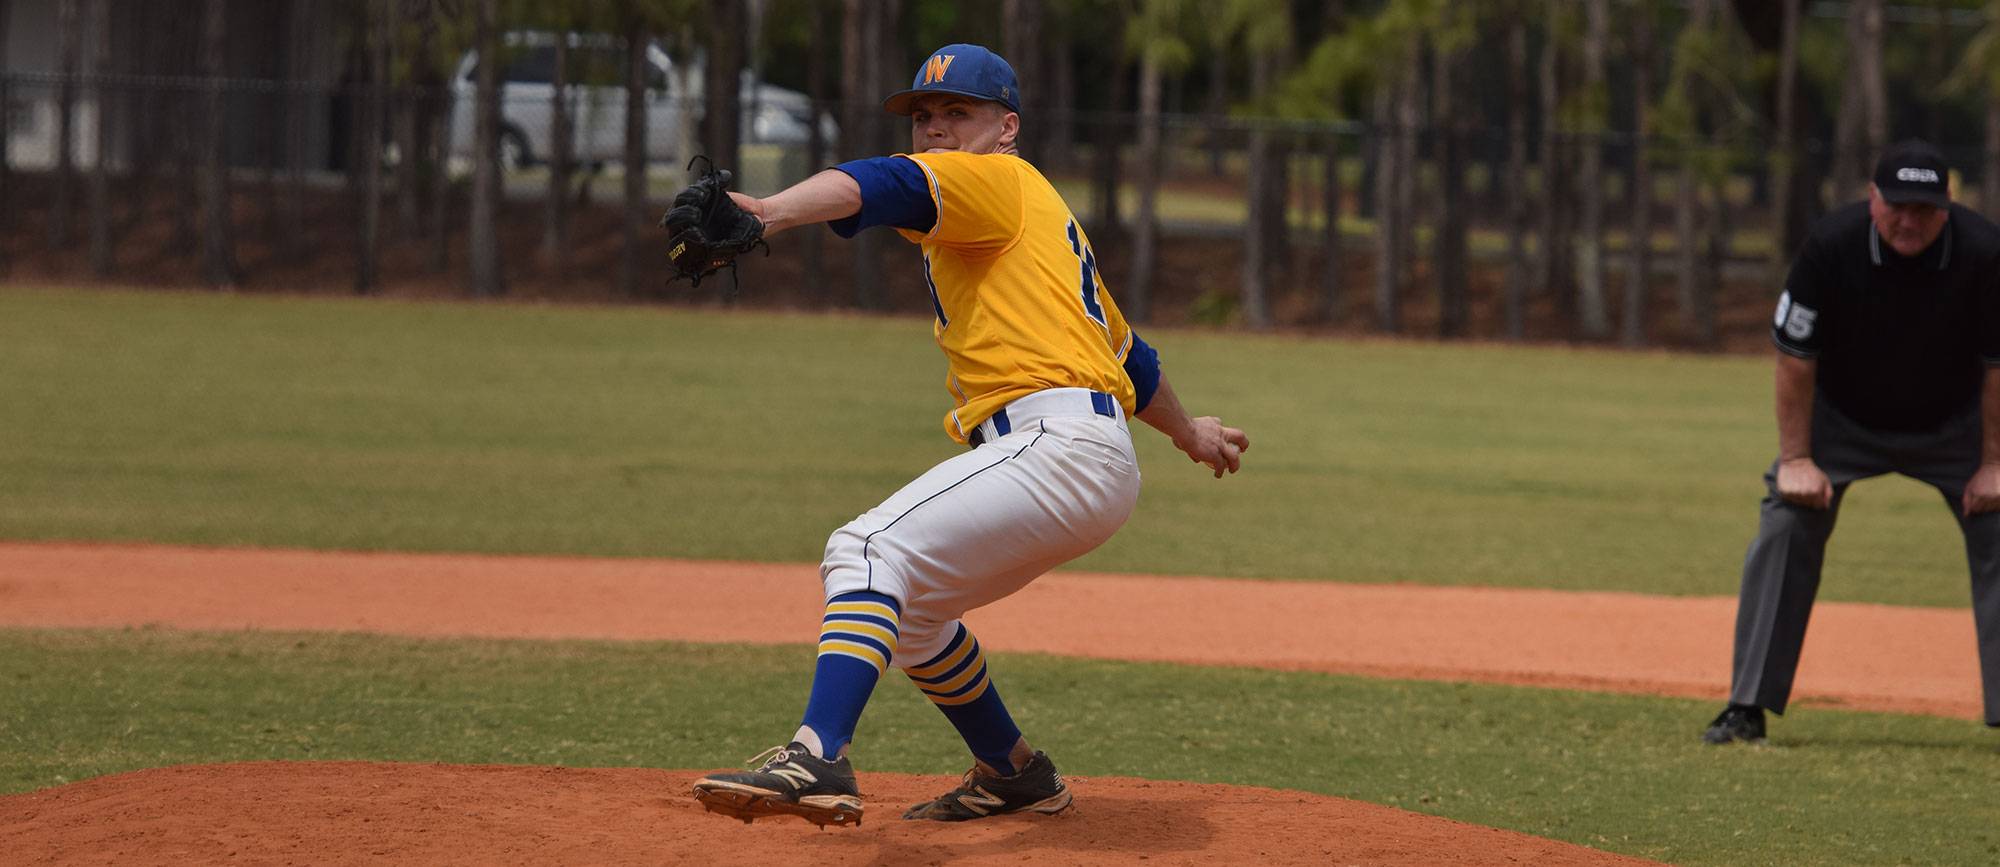 Bats Stay Hot & Bullpen Shines as Golden Bears Edge McDaniel, 7-6